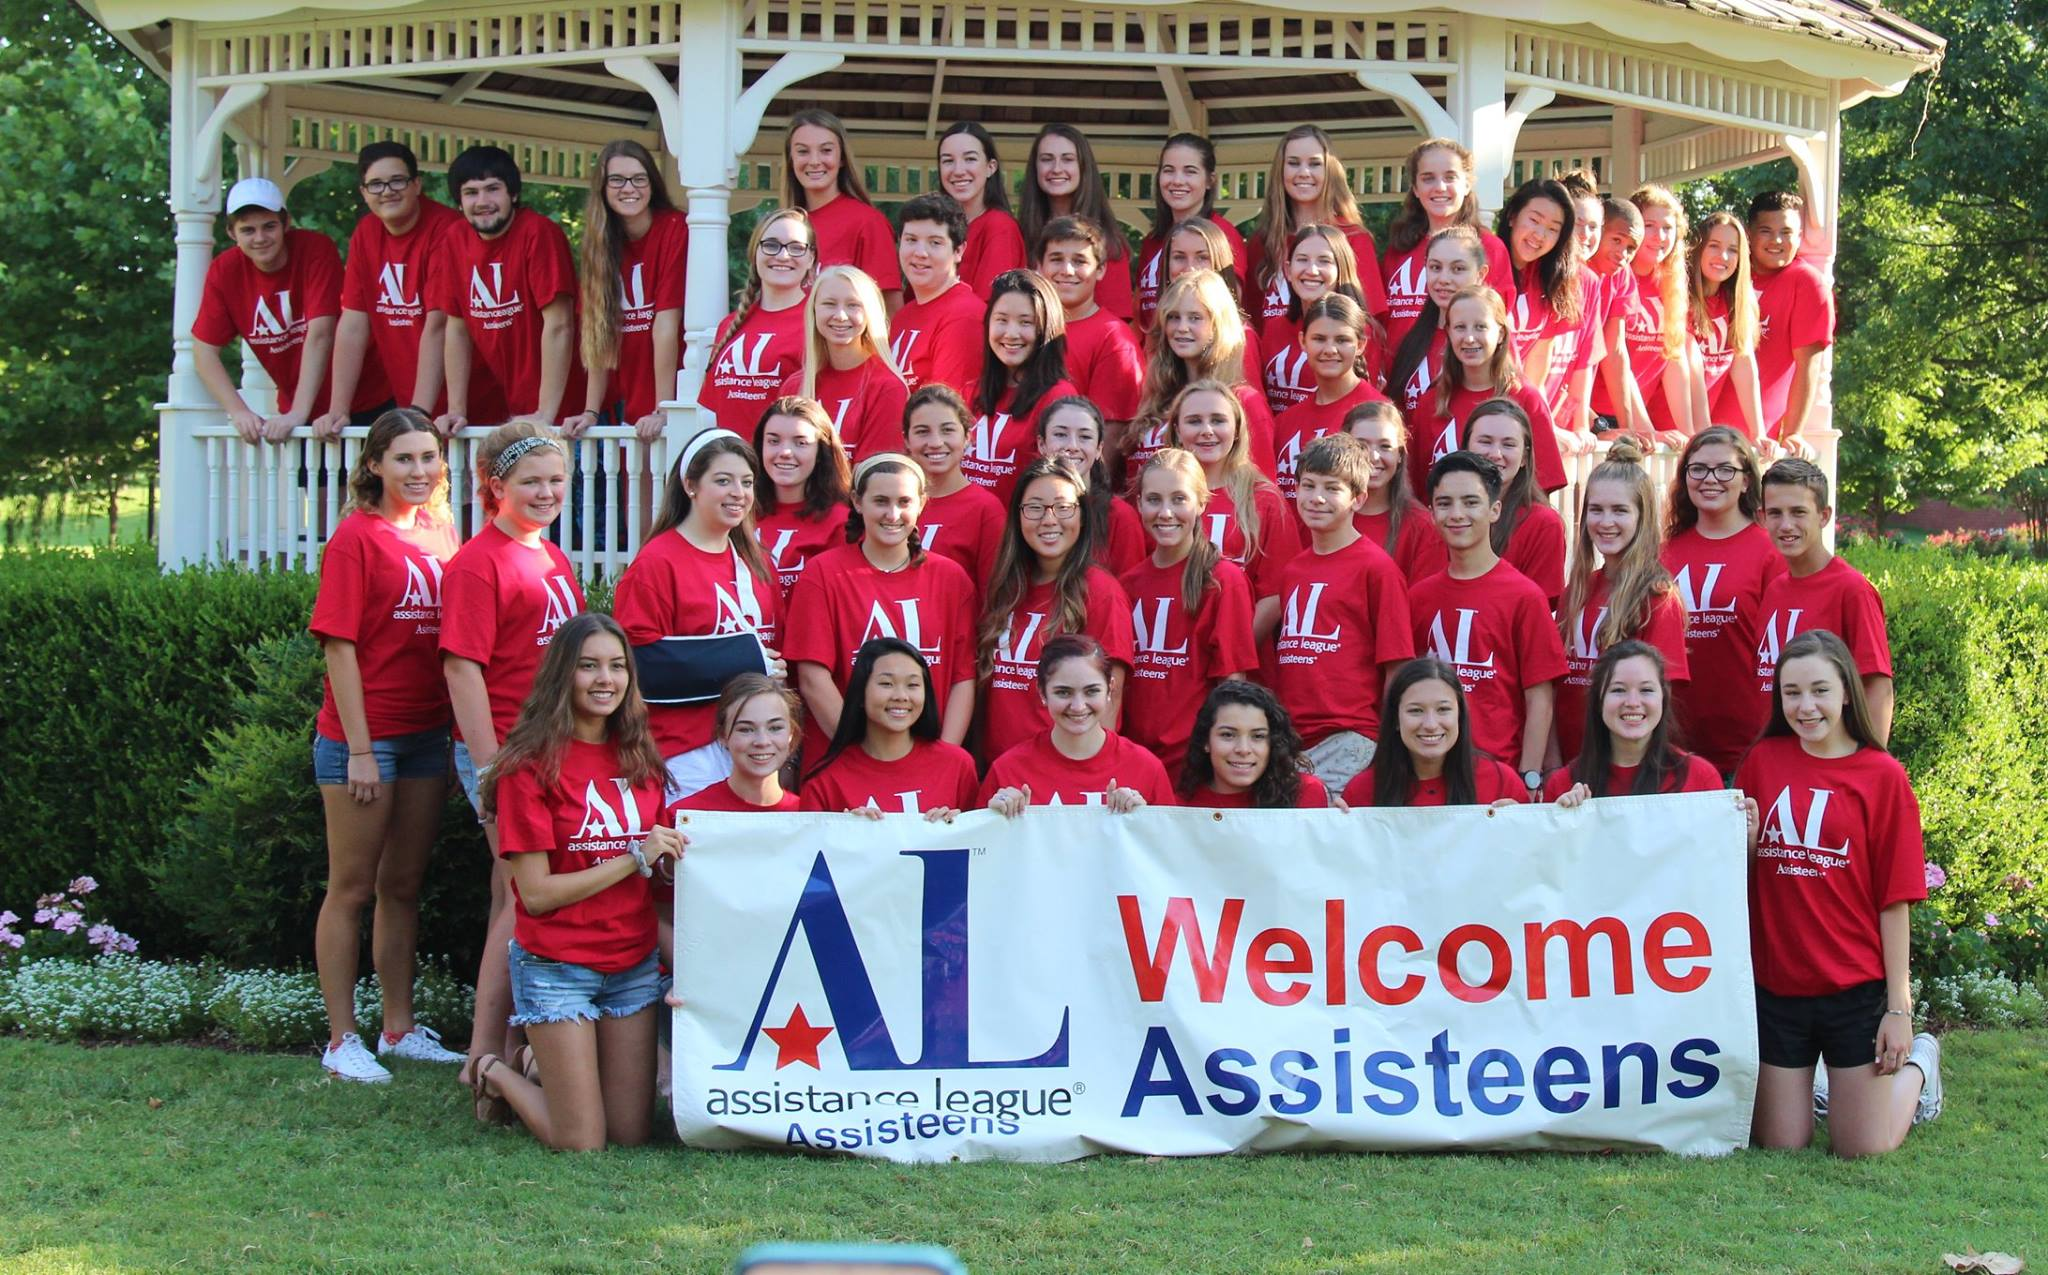 Assisteens-Conference-Group-Picture